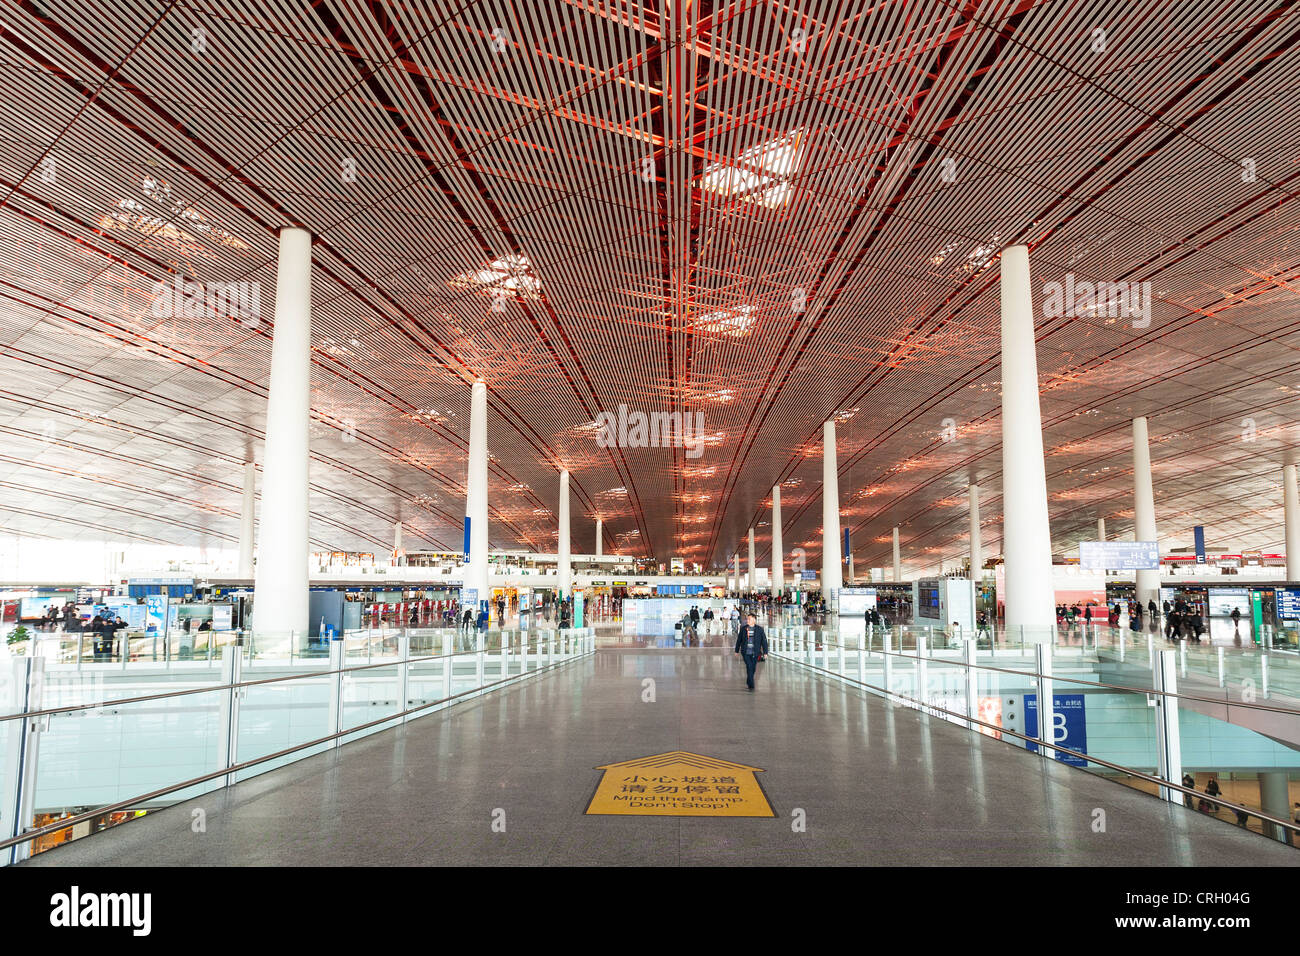 Terminal 3, Beijing International Airport, viewed from the entrance. - Stock Image